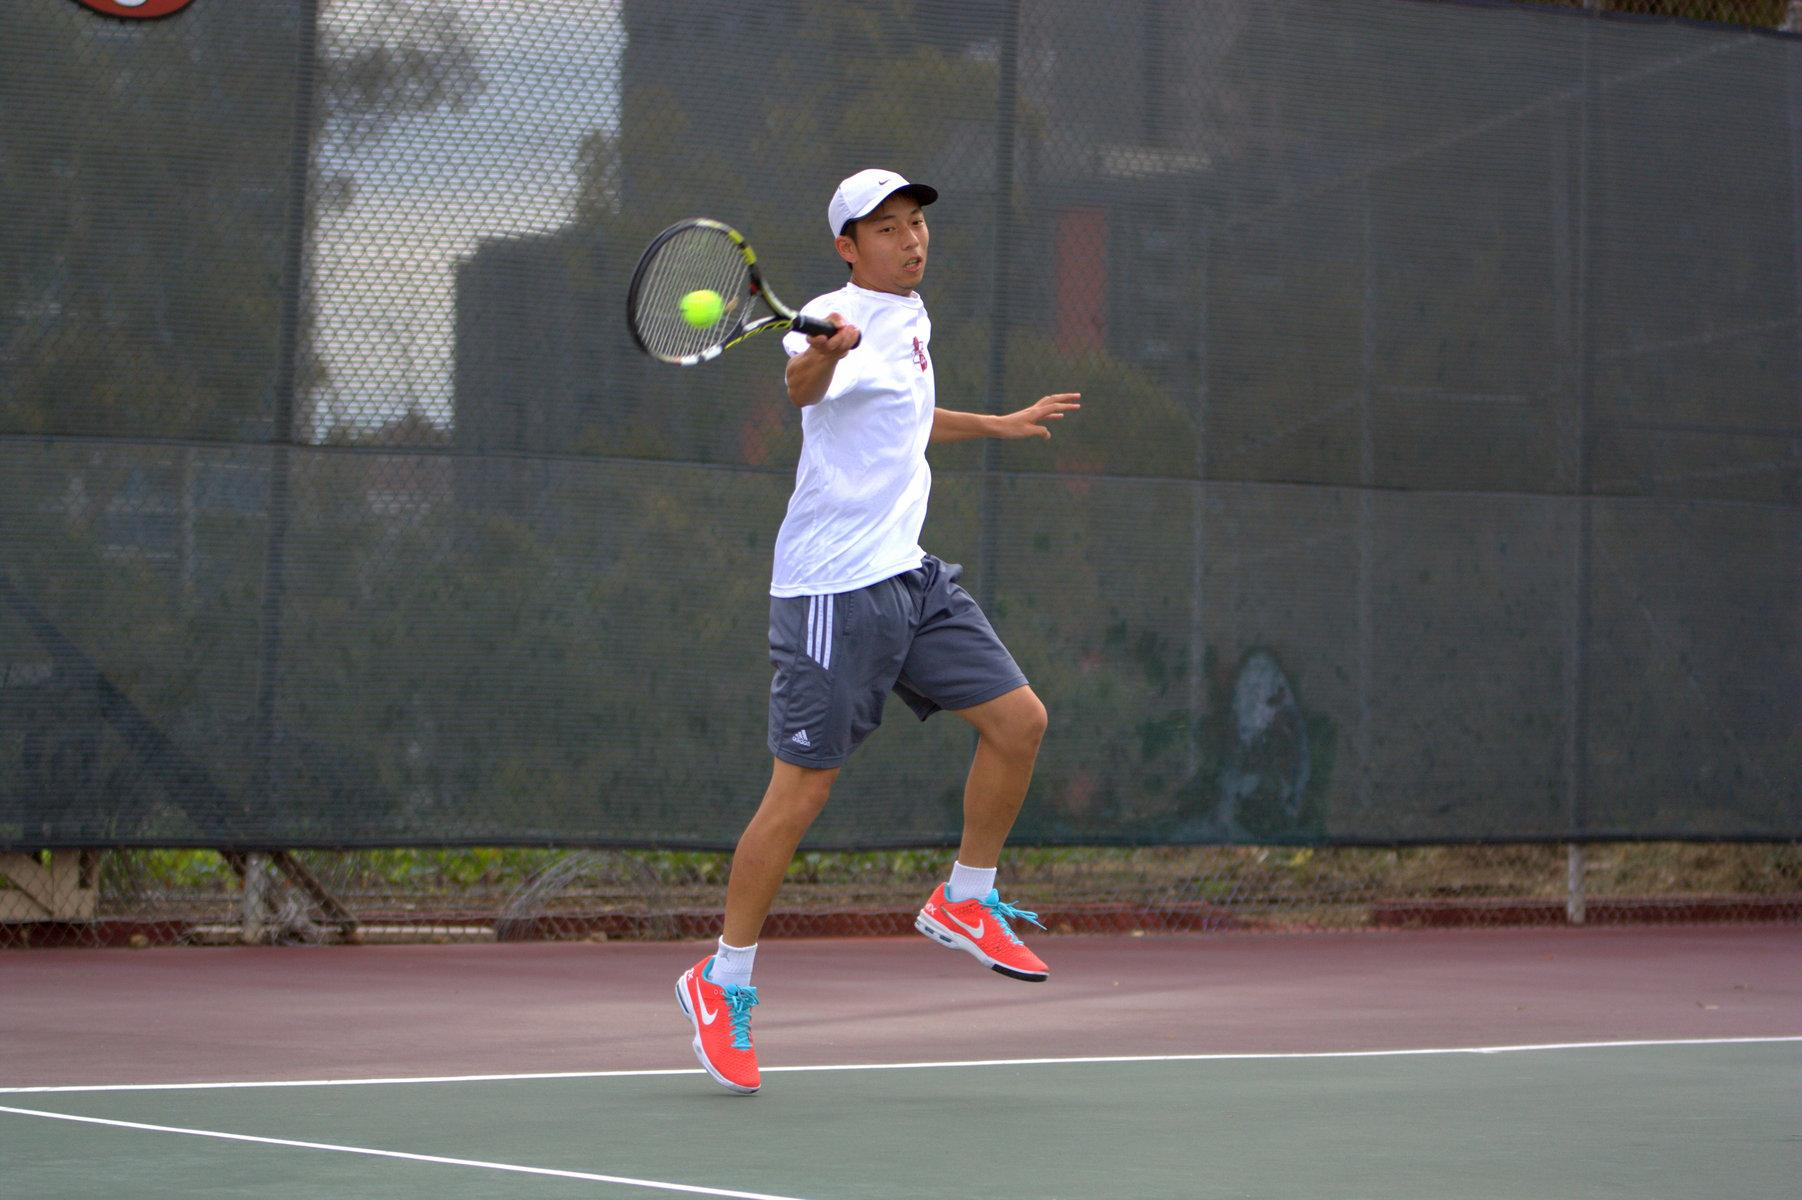 Sophomore tennis player David Lin hits the ball during the doubles round against Palomar College on March 17 at the SDCC Tennis Courts. Photo credit: David Pradel